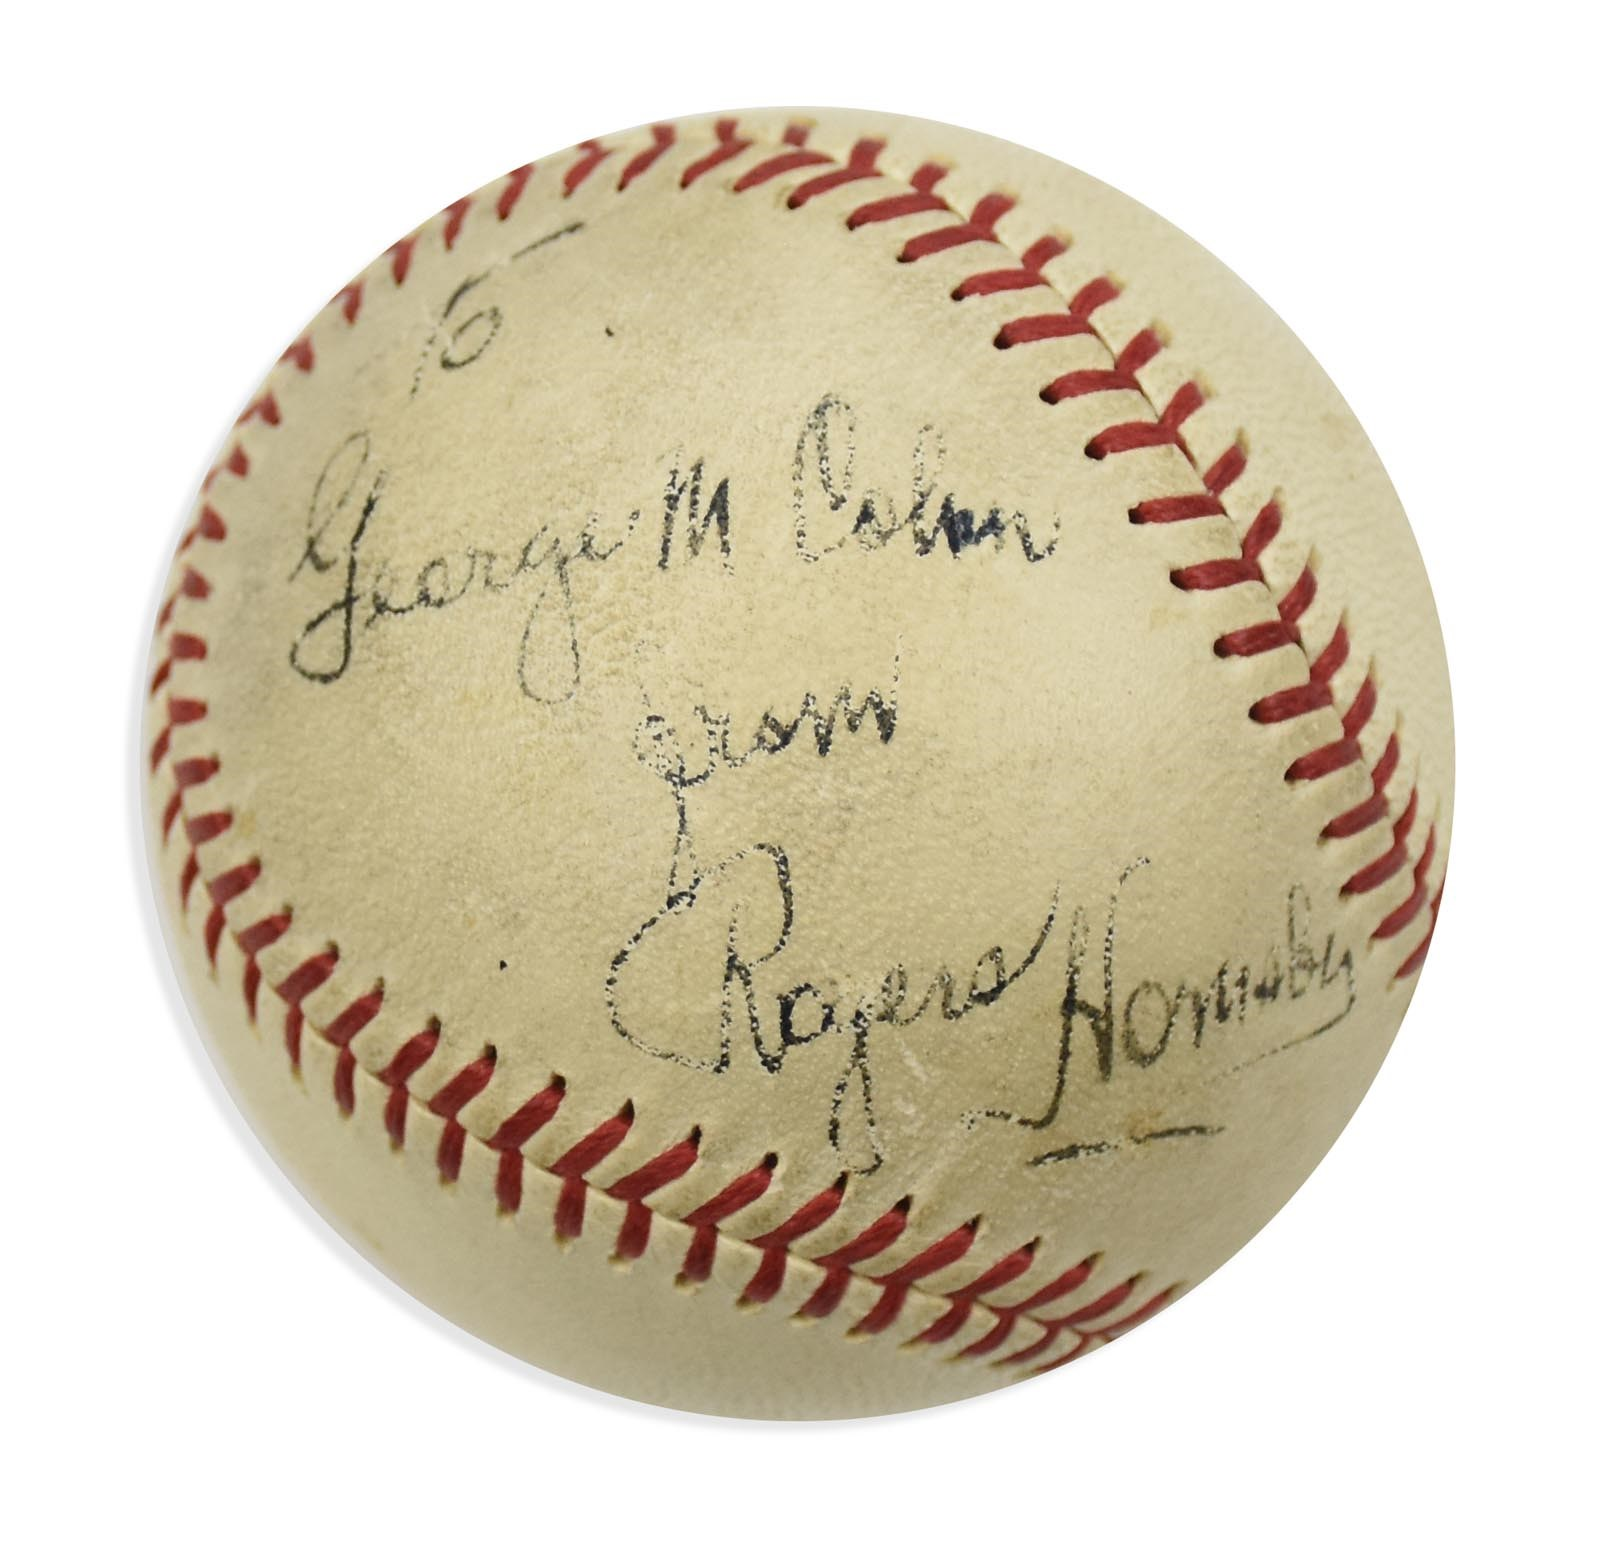 Baseball Autographs - Future Auctions